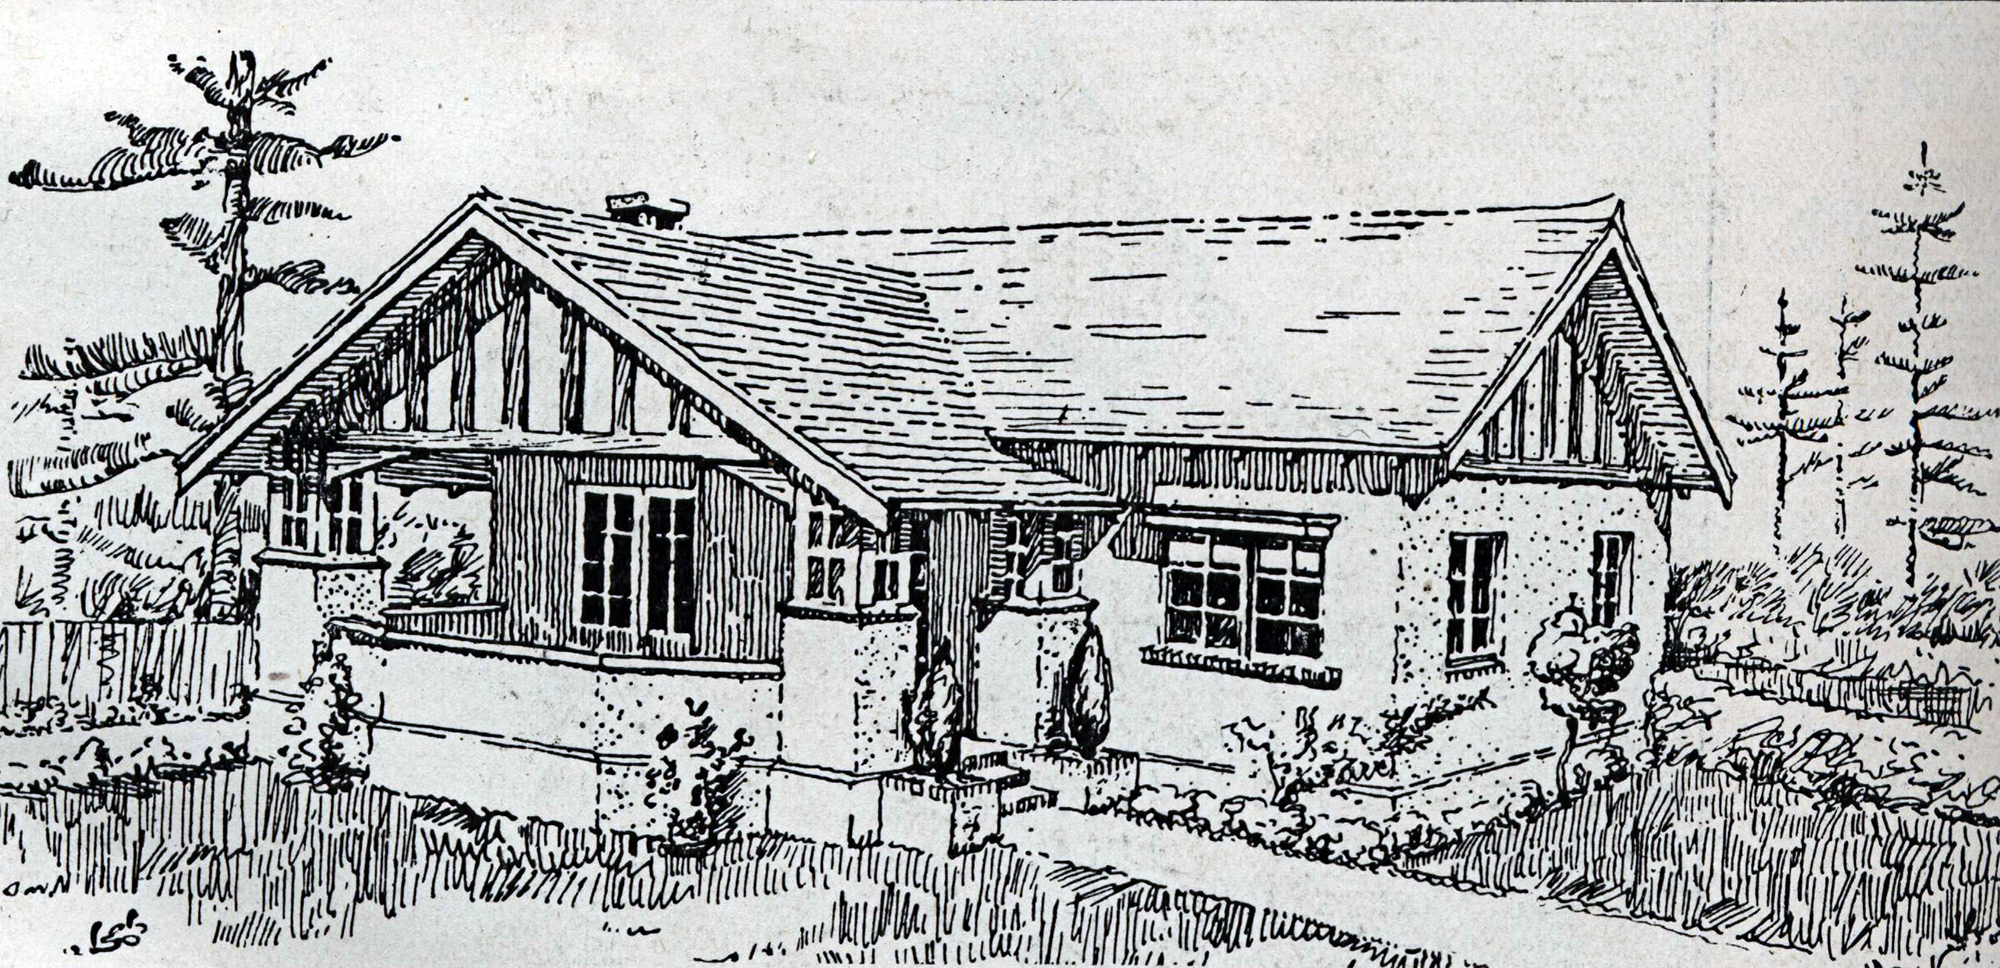 This 1920 Plan By W Simon And Co Shows A Large Californian Bungalow Typical Of Affluent Wollstonecraft The Half Timbered Gable Clearly Link To